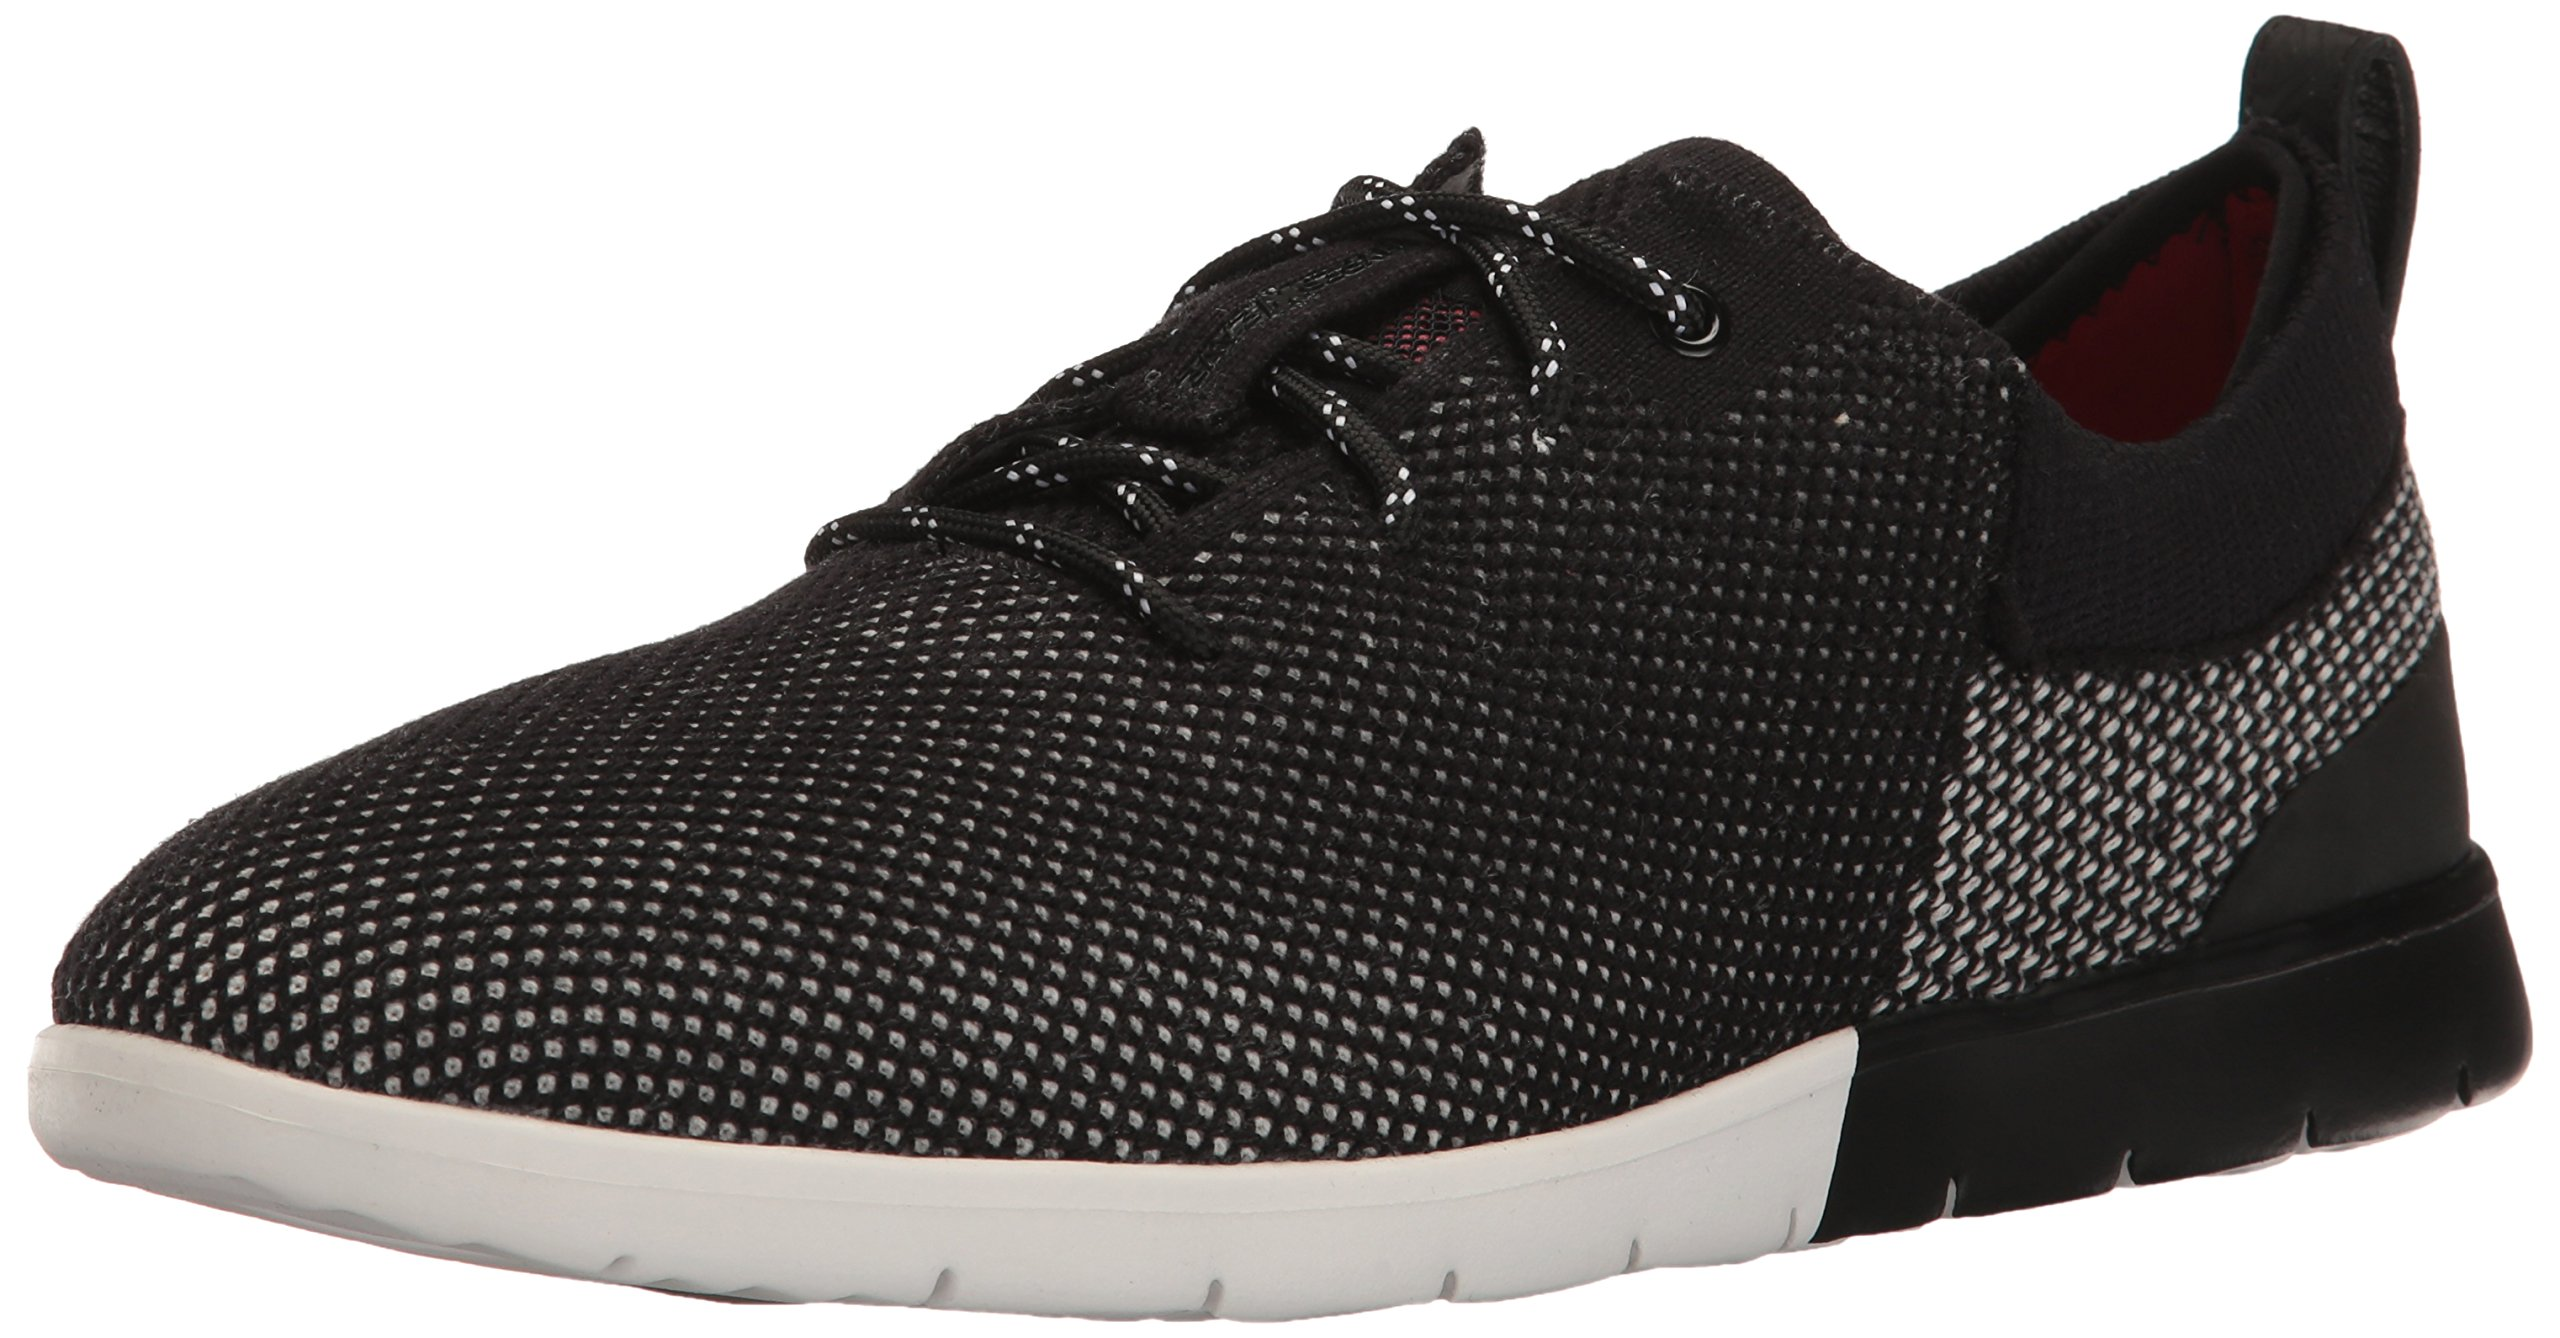 UGG Men's Feli Hyperweave Oxford, Black, 12 M US